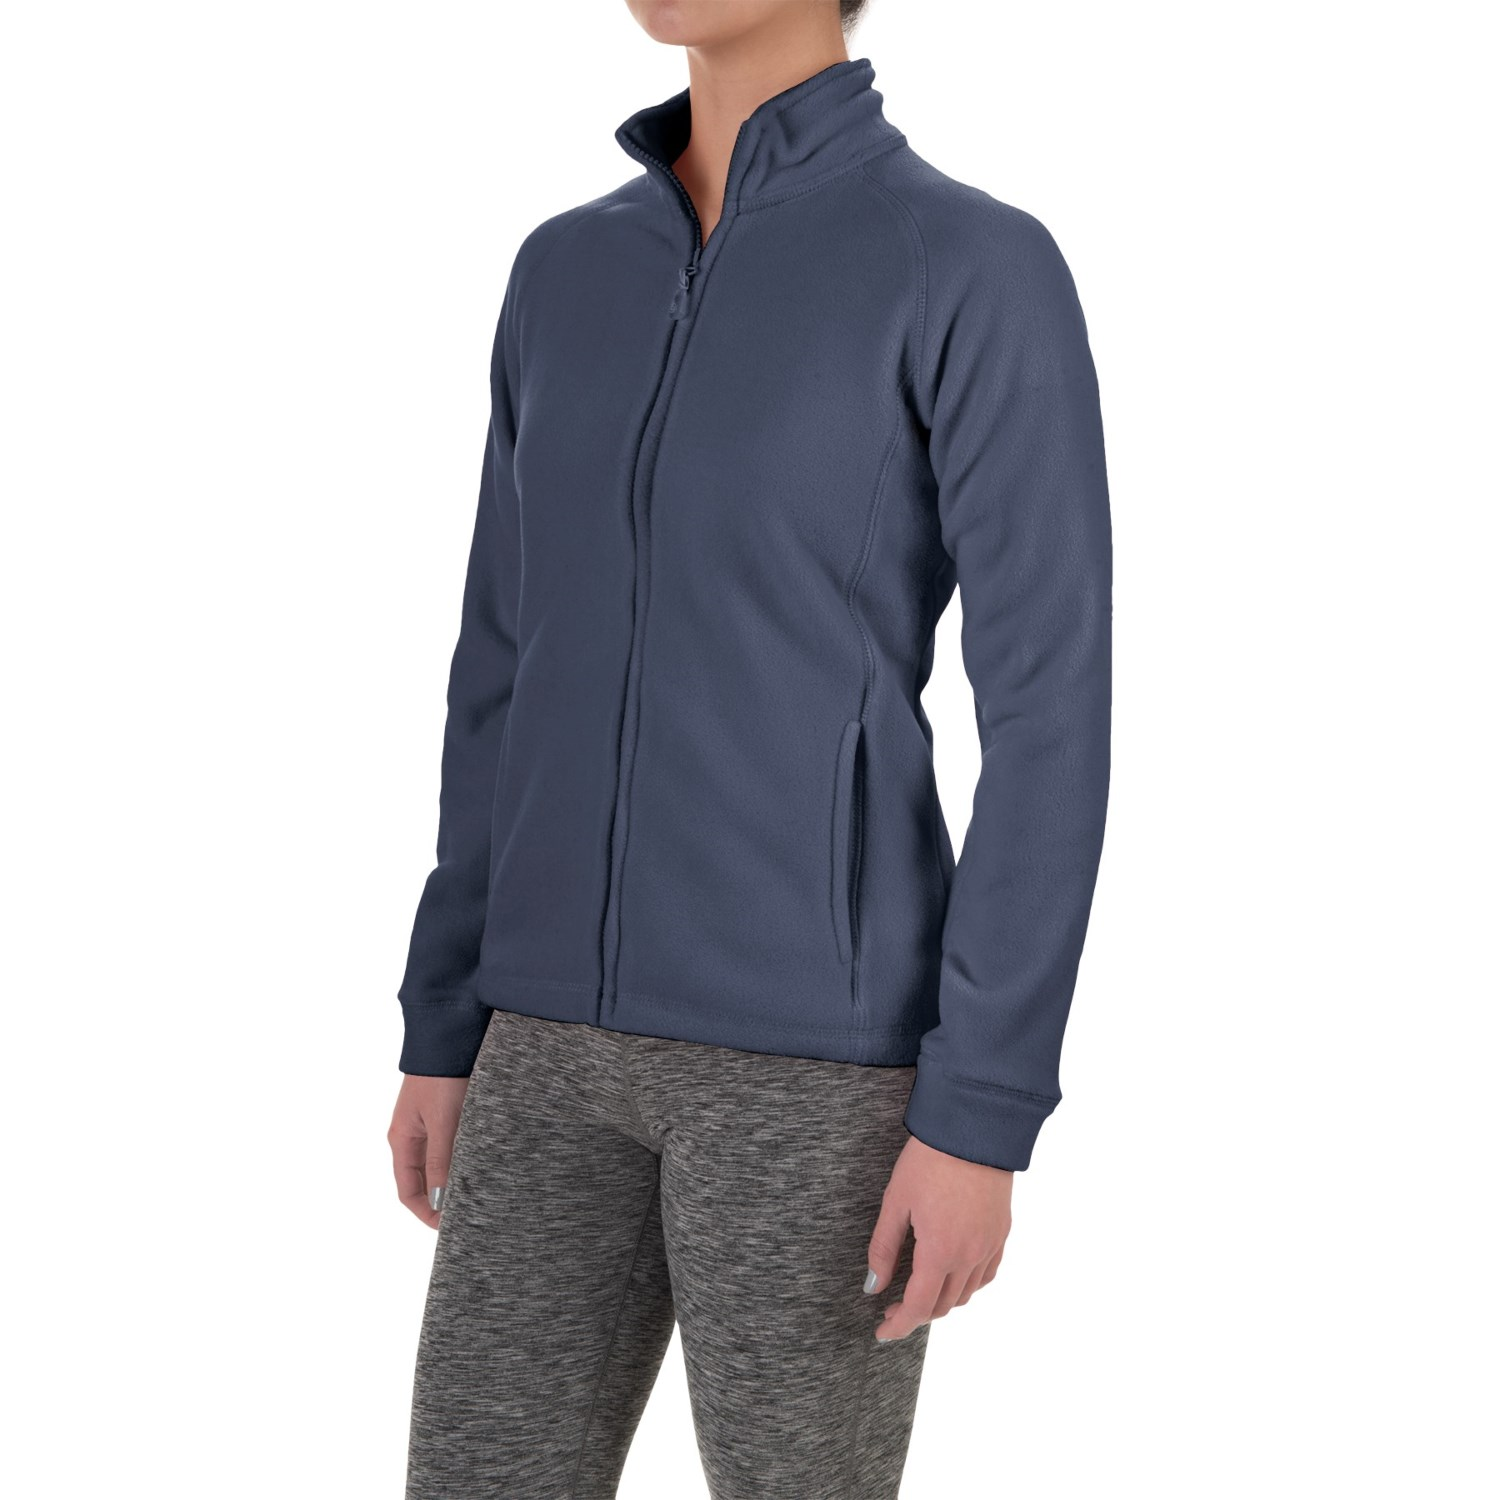 Colorado Clothing Bear Creek Fleece Jacket (For Women) - Save 52%